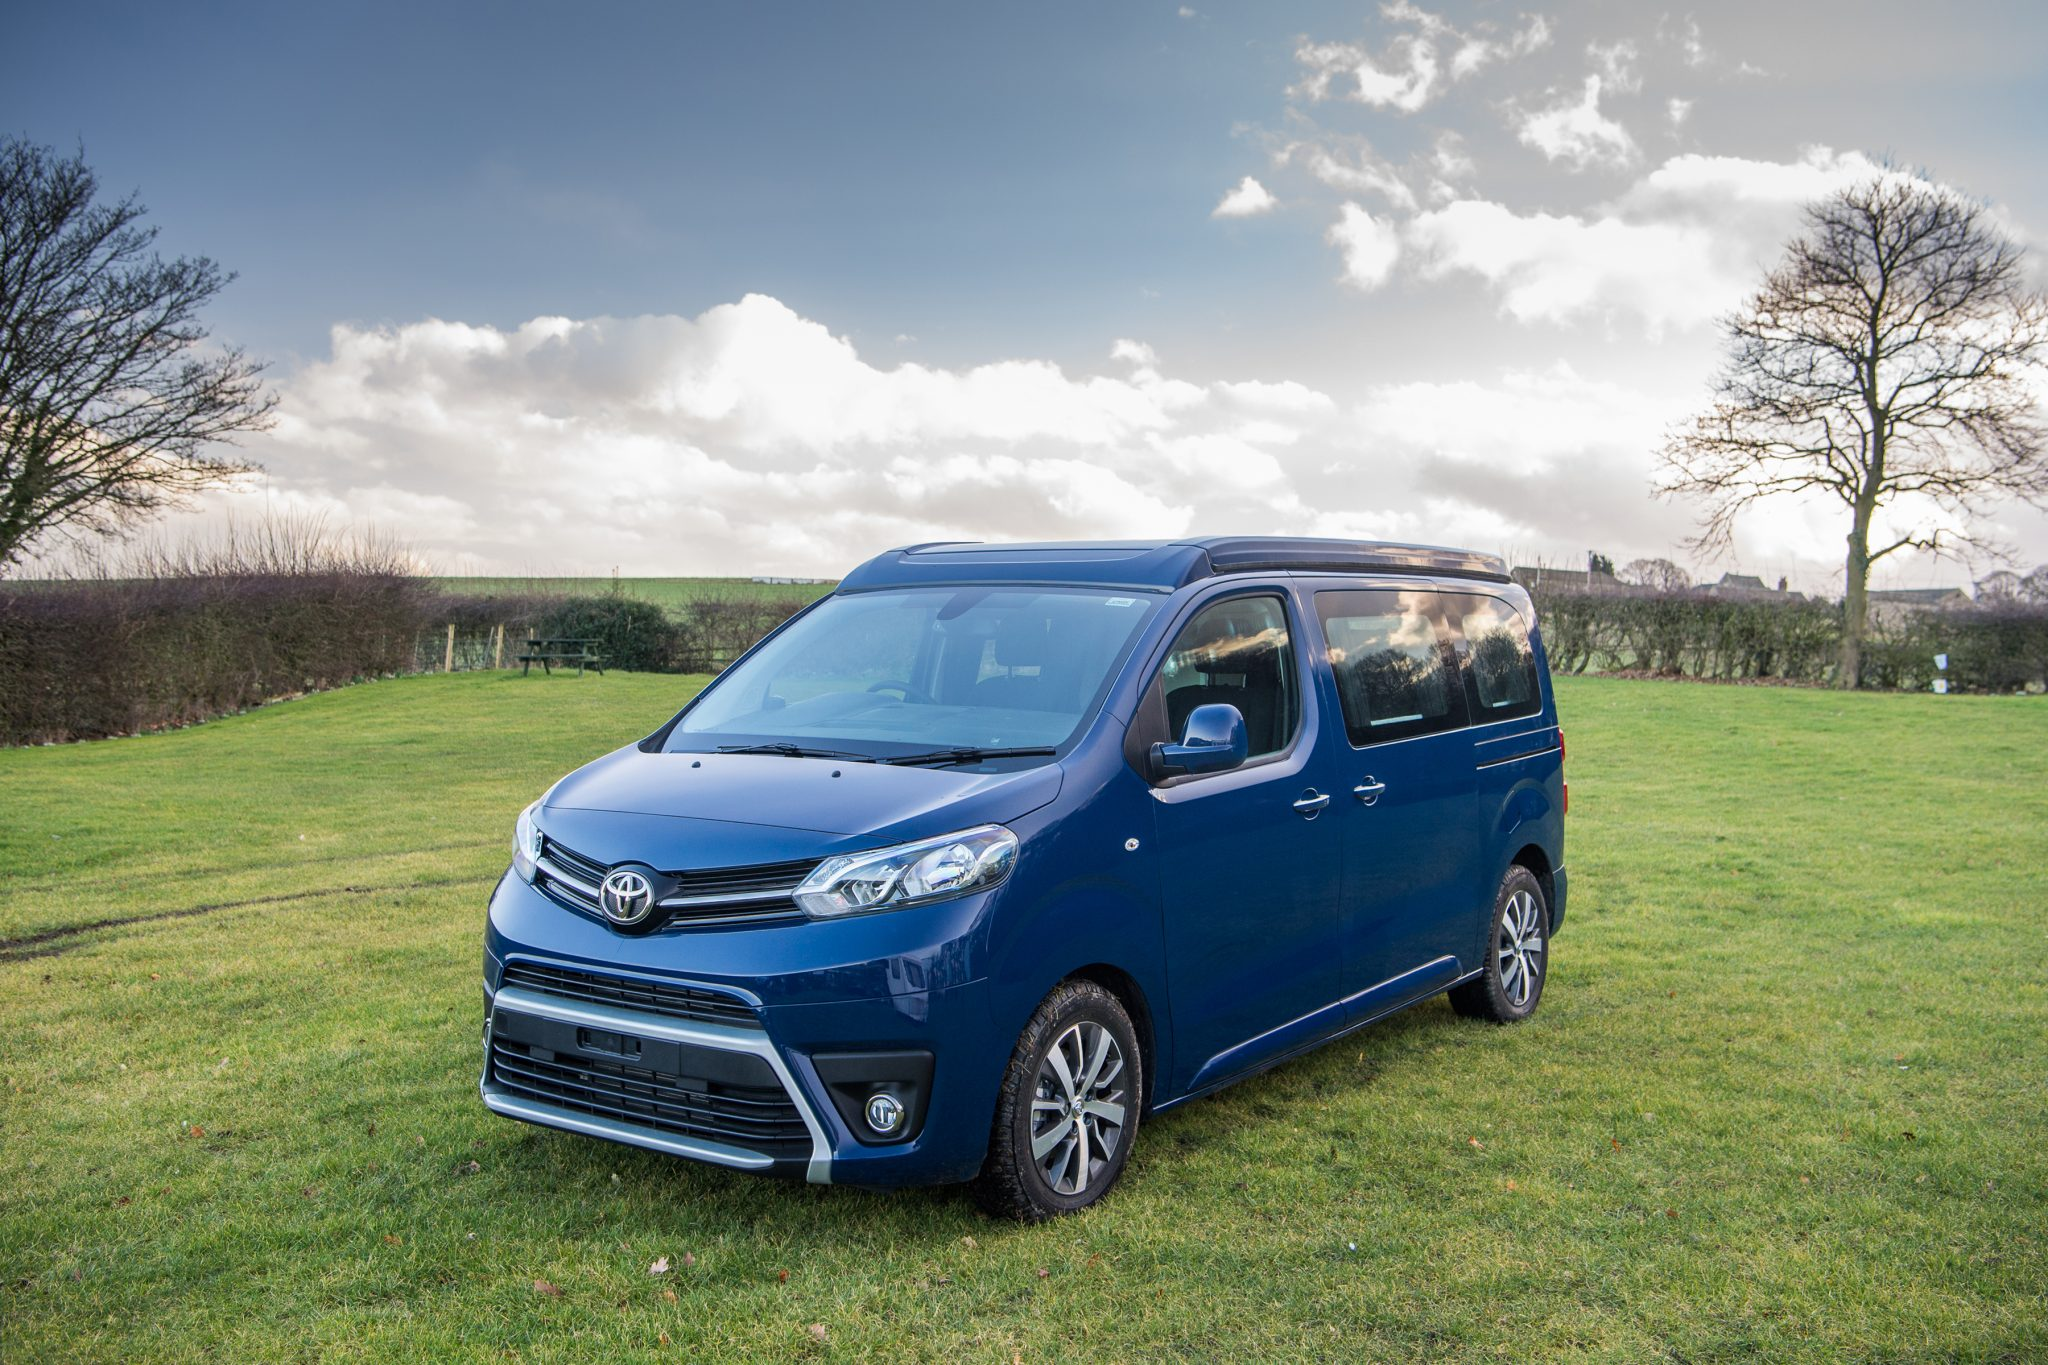 Introducing the New Toyota Proace Compact Camper - Outbound